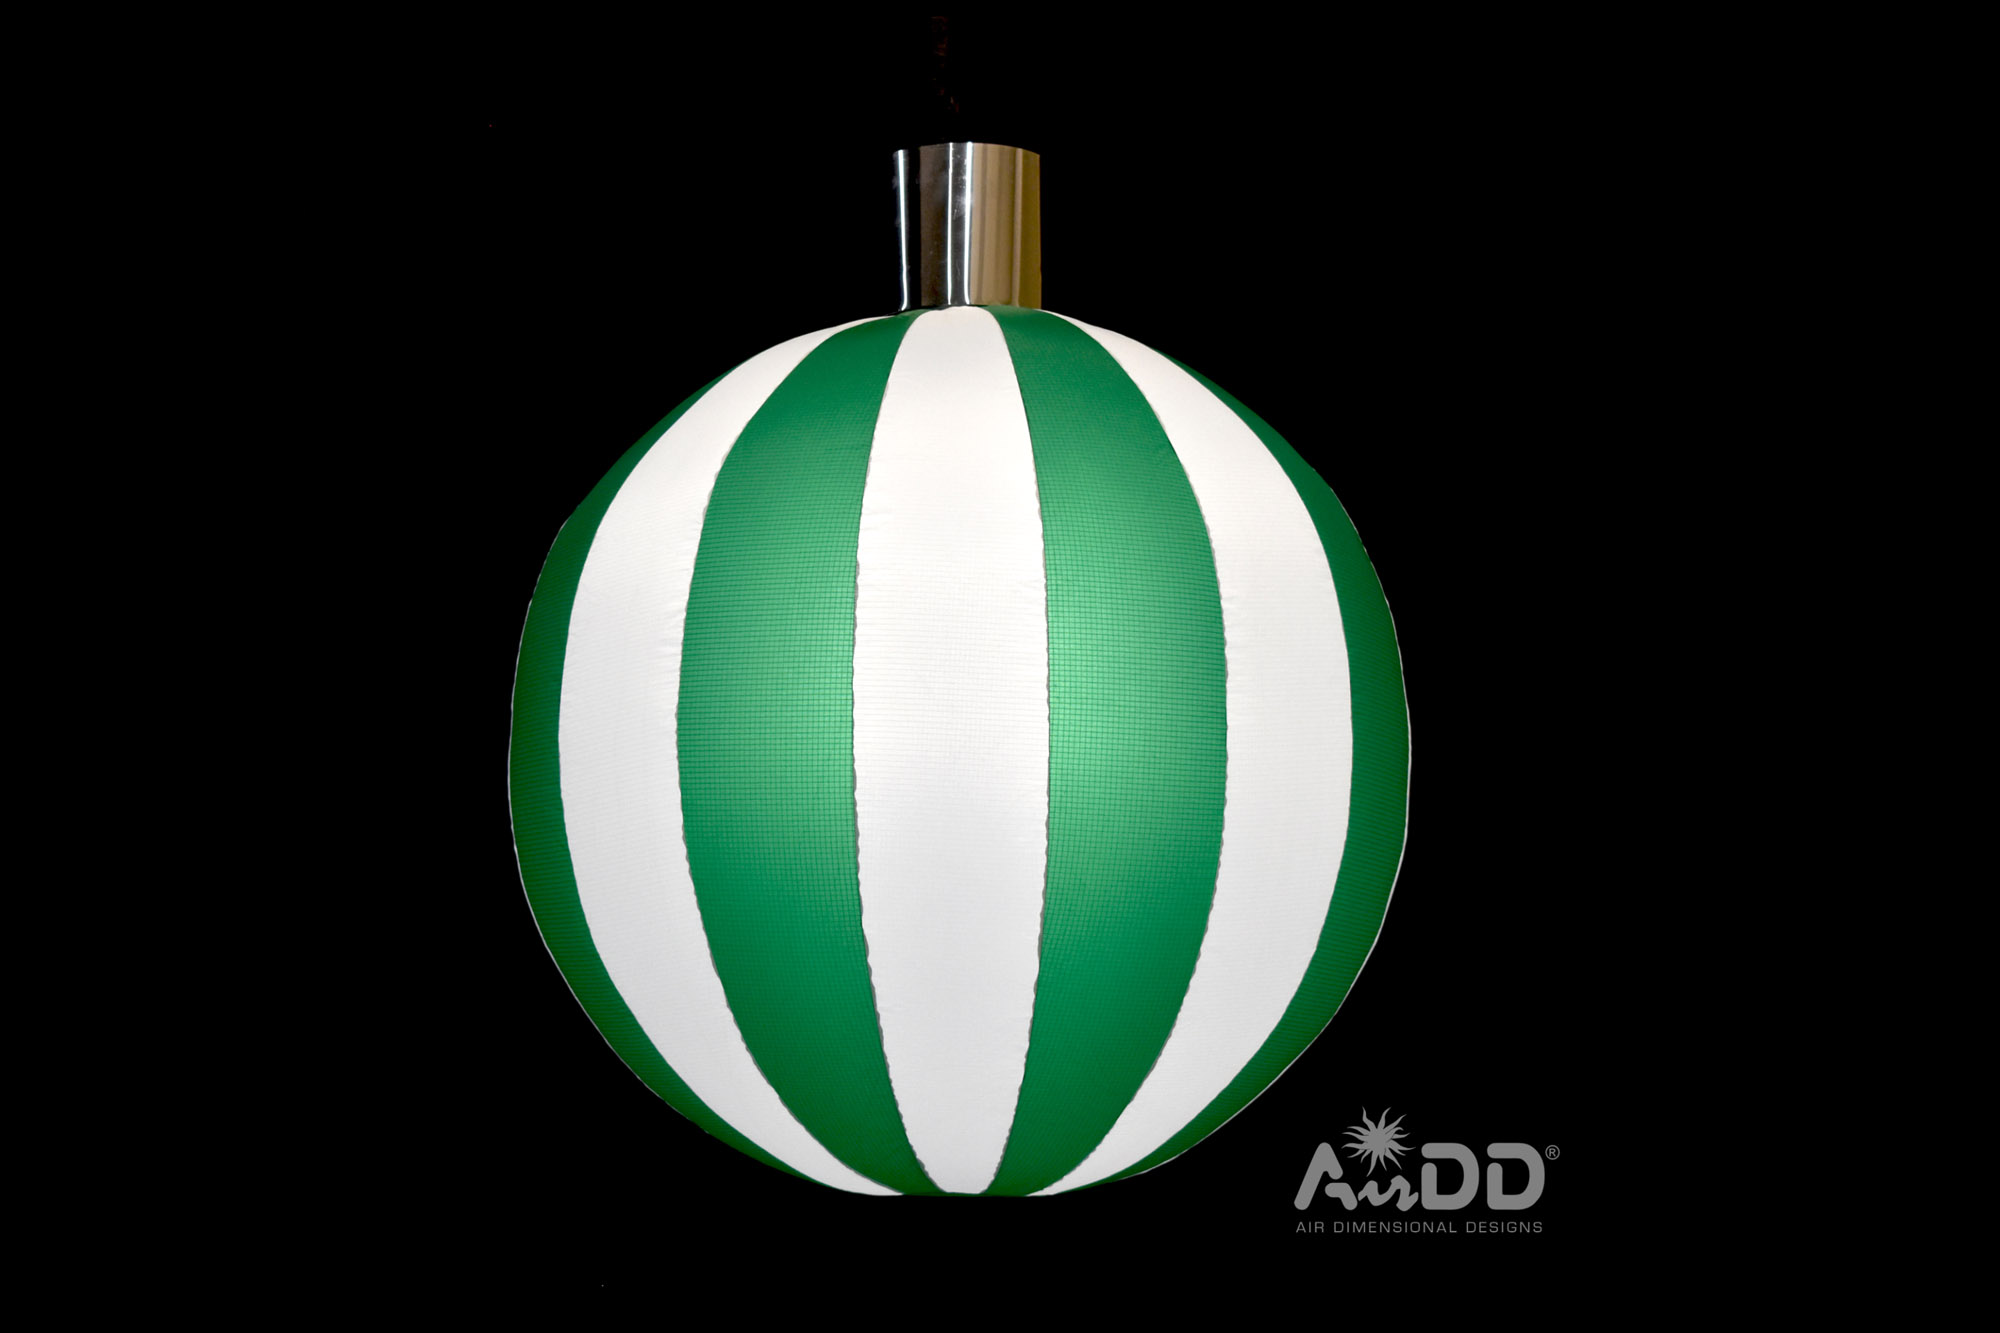 green-white-ornament-1-uai-2880x1920.jpg